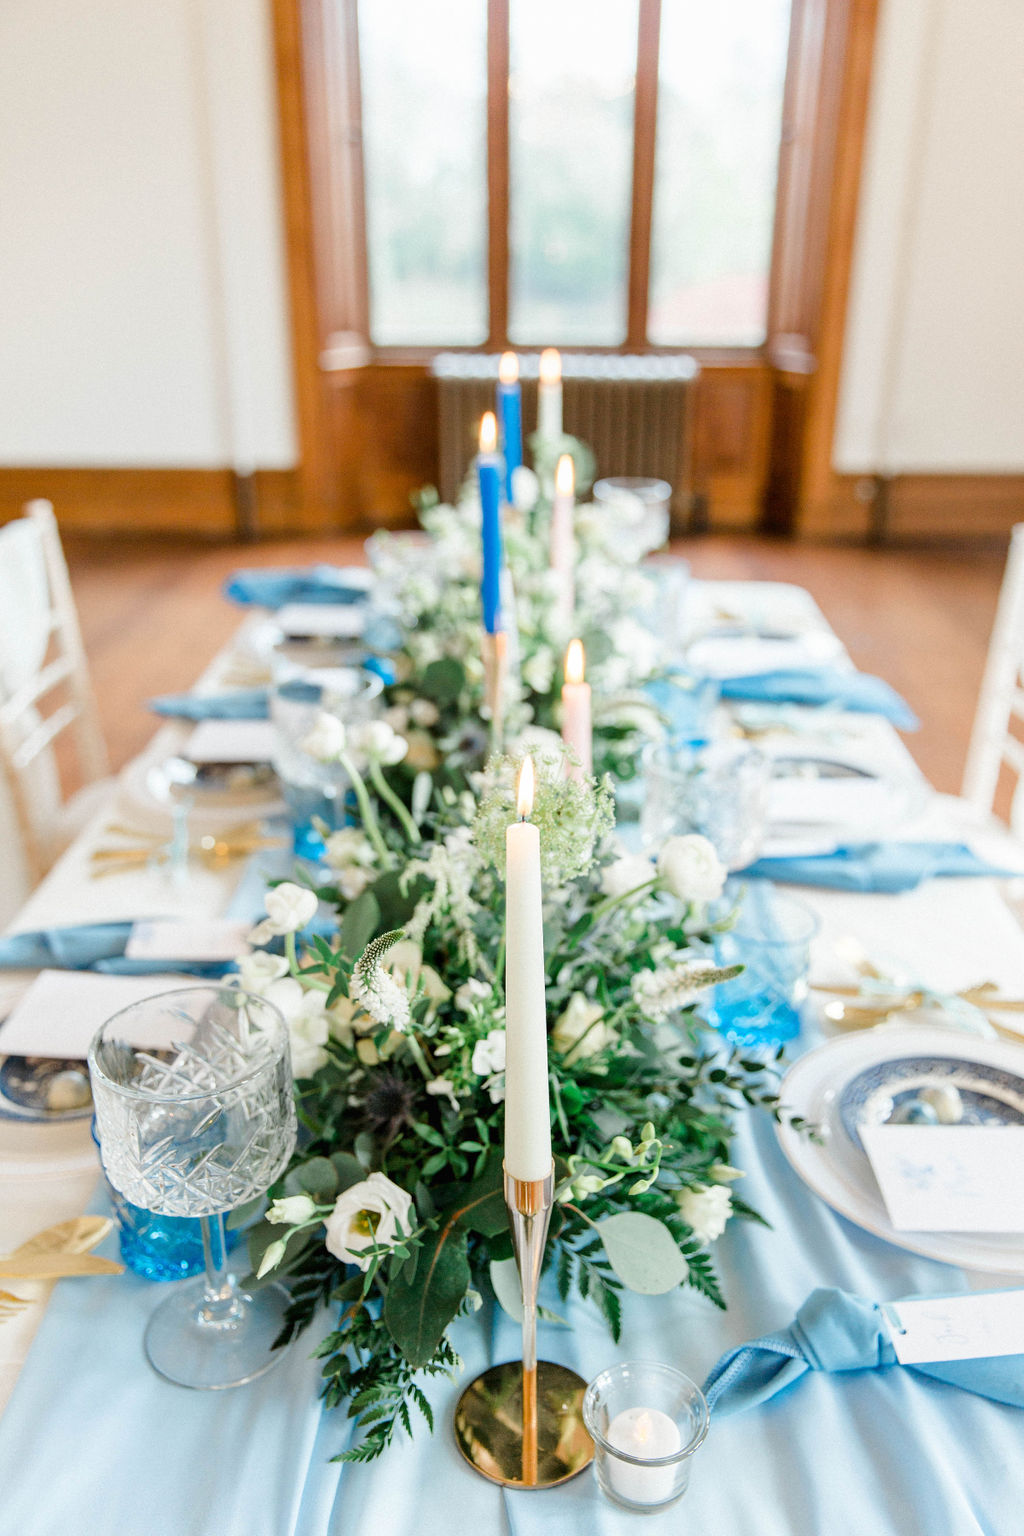 wedding table setting close up photo at romantic wedding